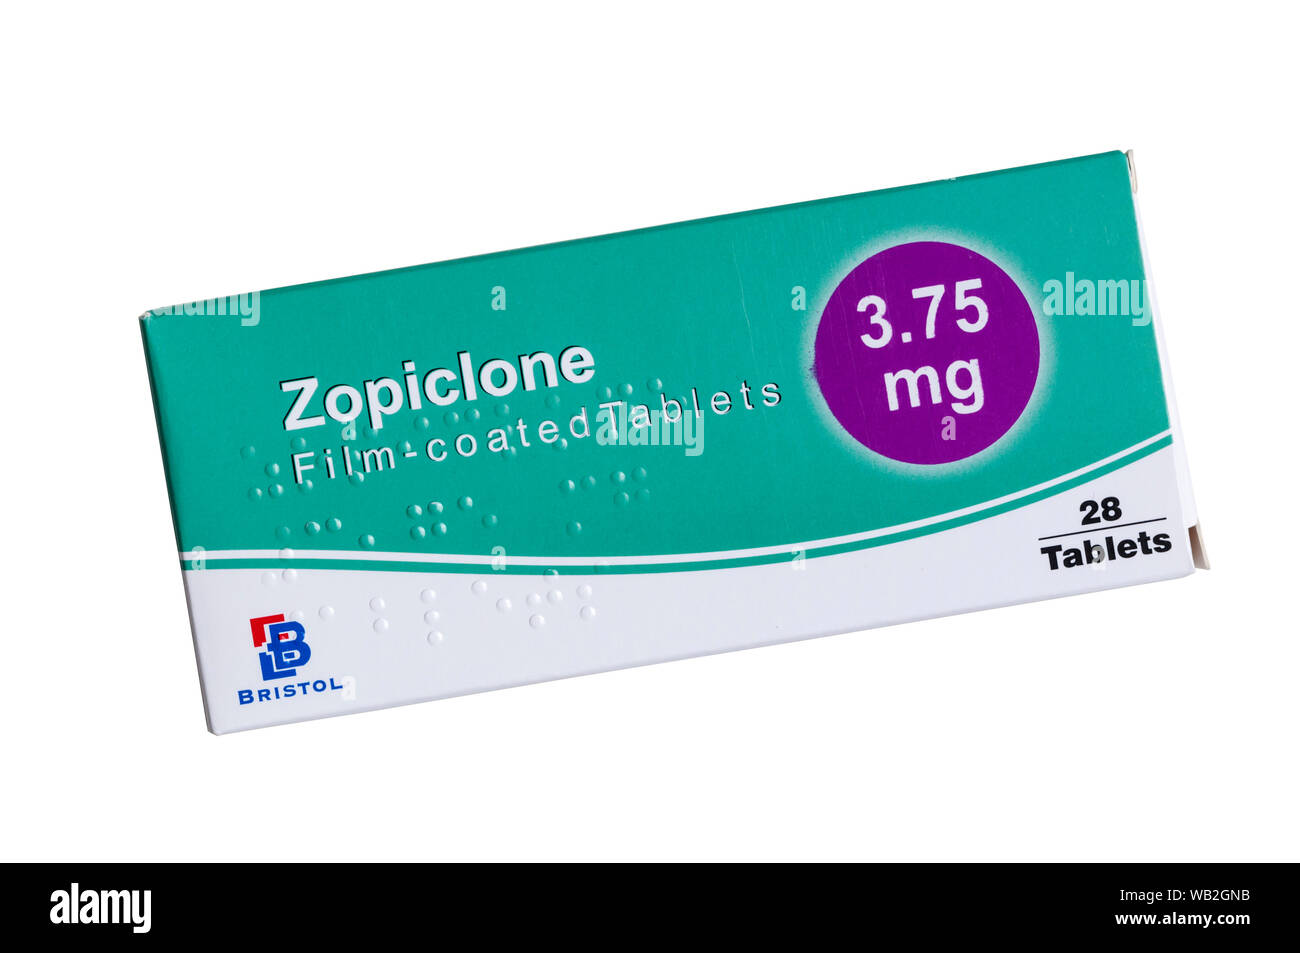 Zopiclone Stock Photos & Zopiclone Stock Images - Alamy